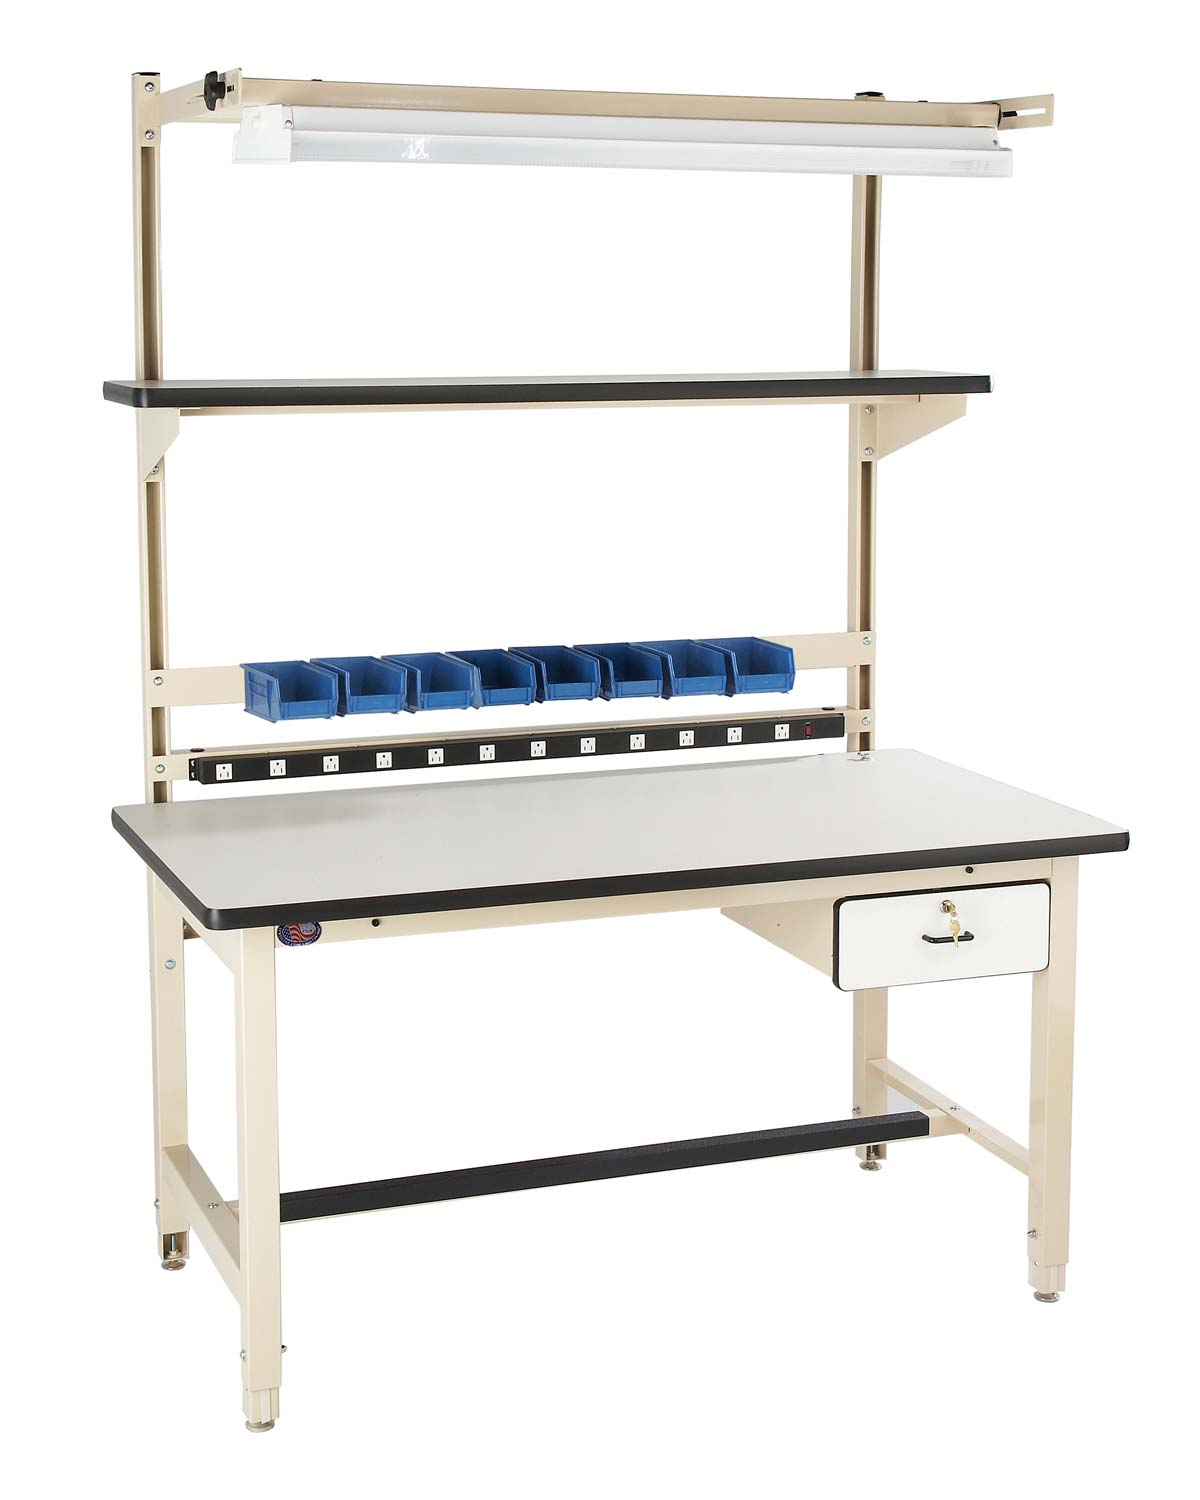 Bench In A Box Pro Line Series Pro Line Workbenches And Lab Furniture